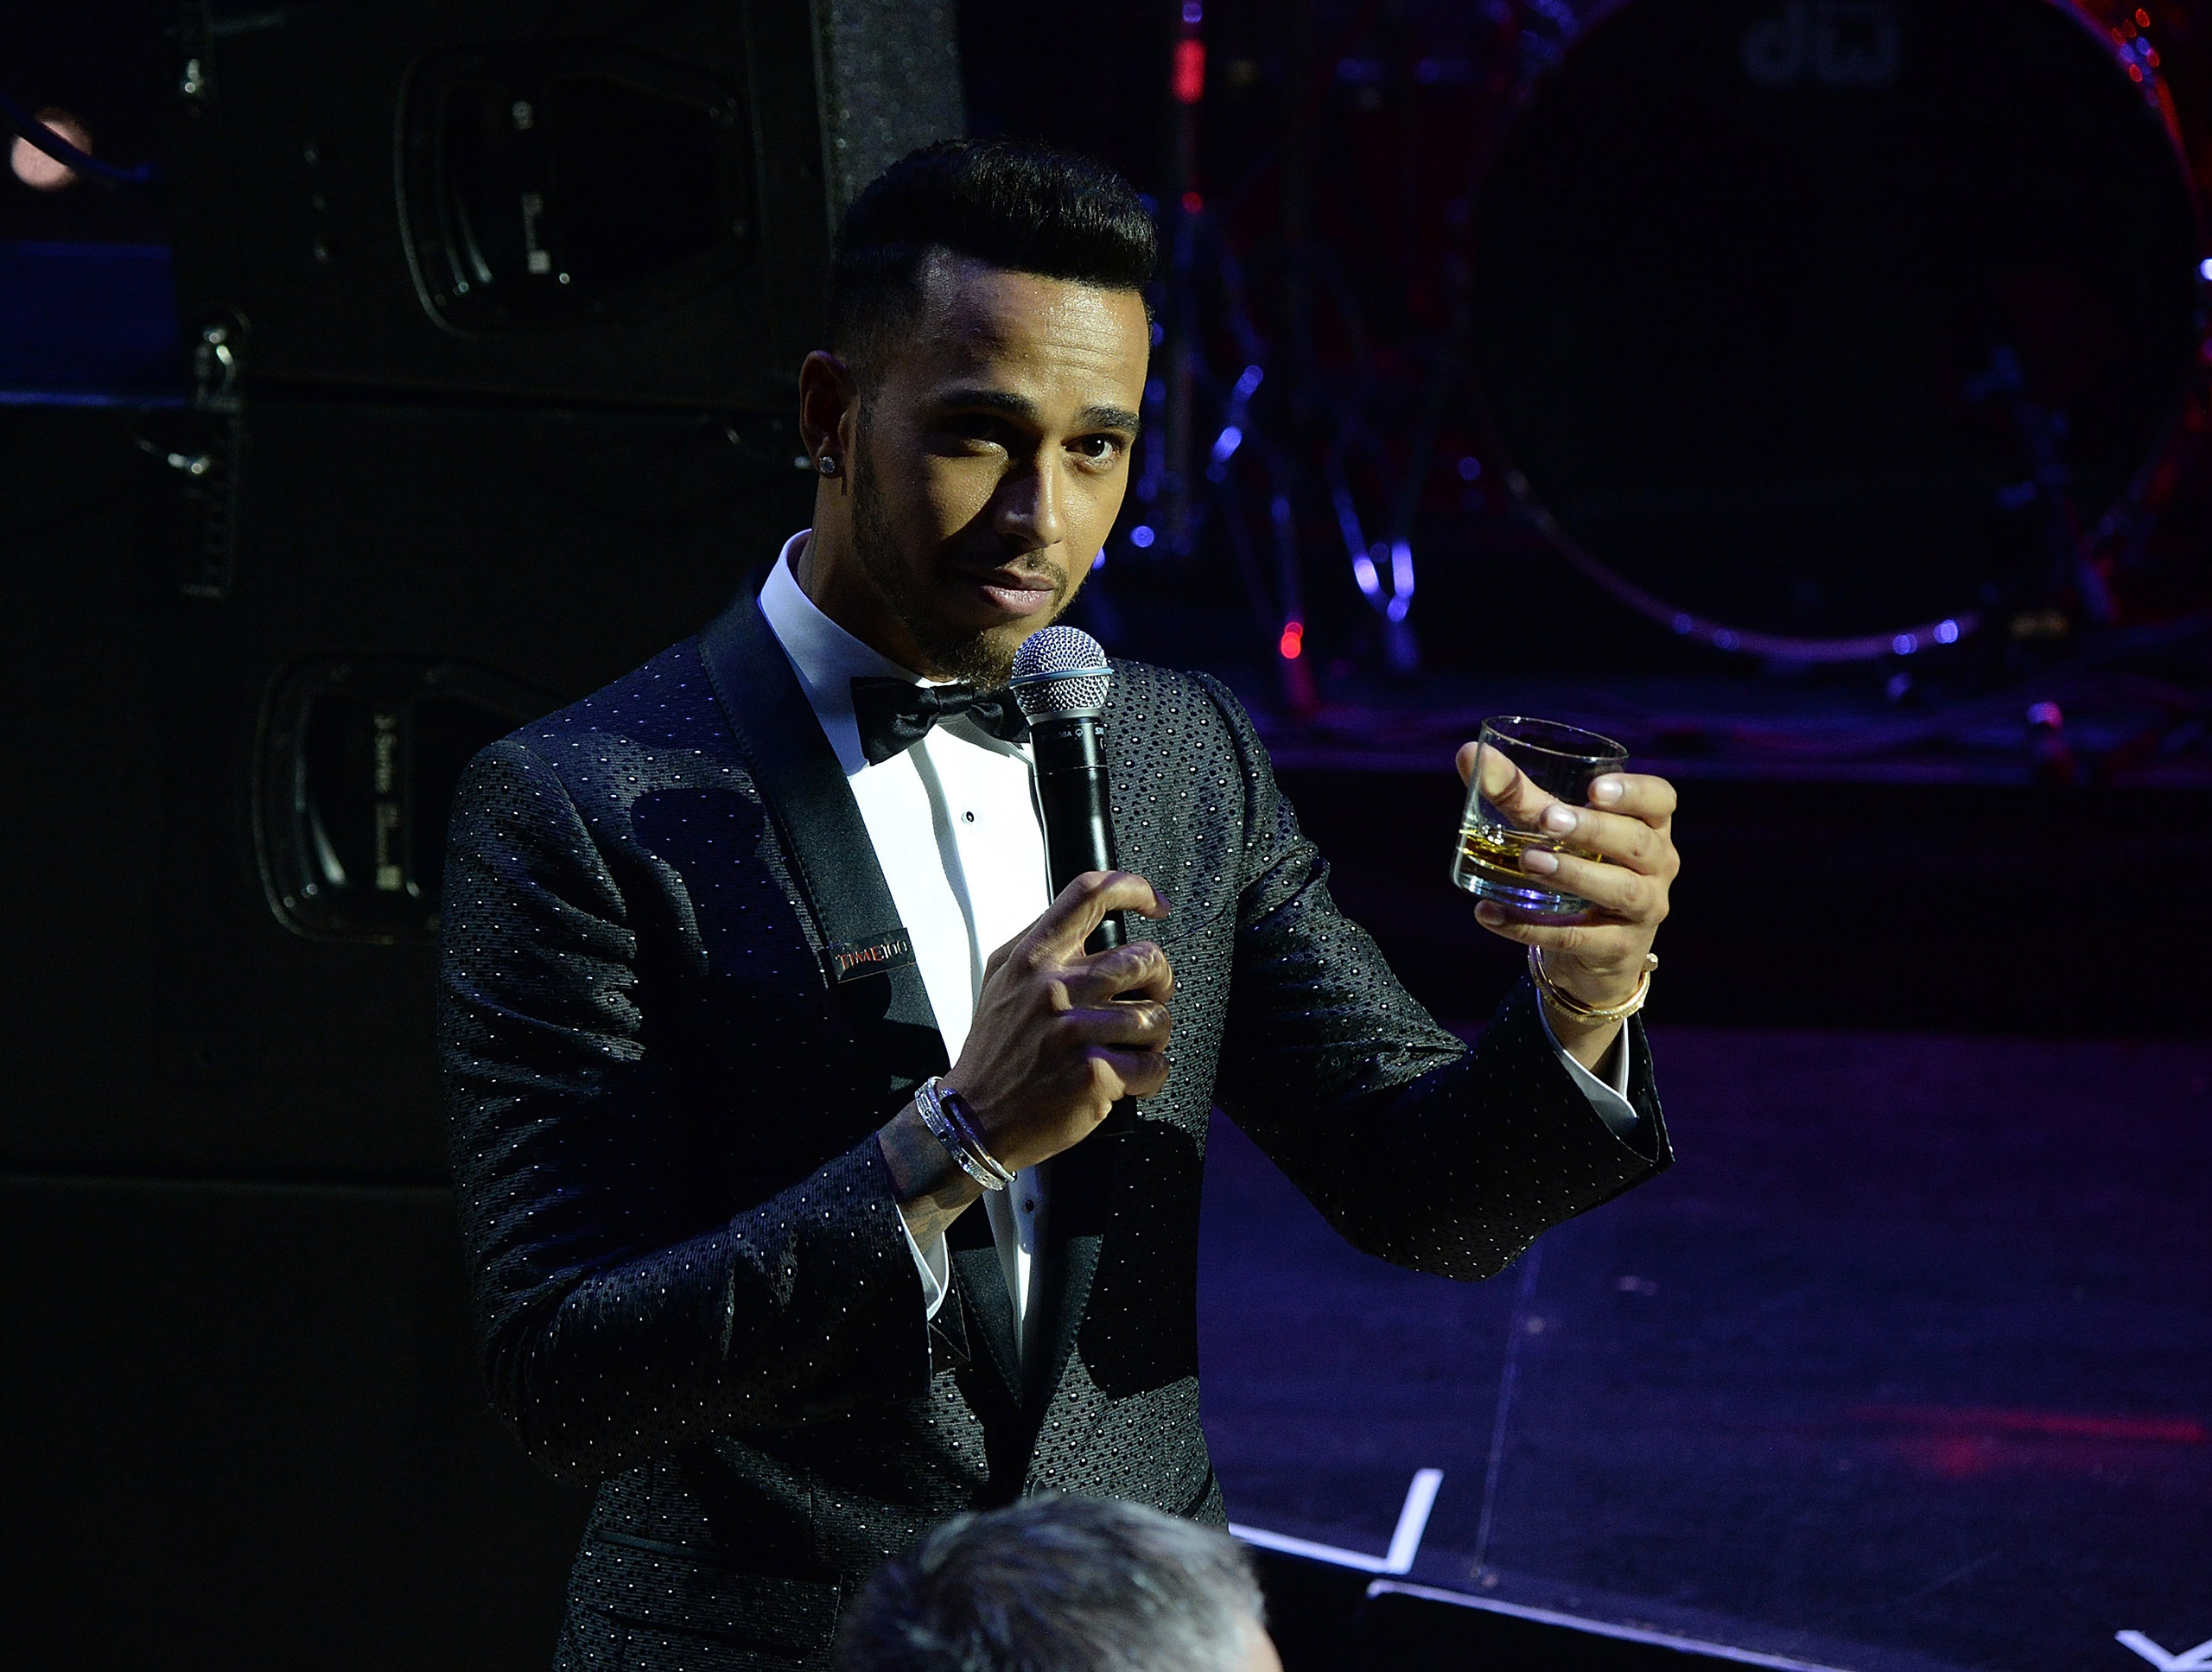 Lewis Hamilton delivers a toast at the 2016 Time 100 Gala in New York City on April 26, 2016.